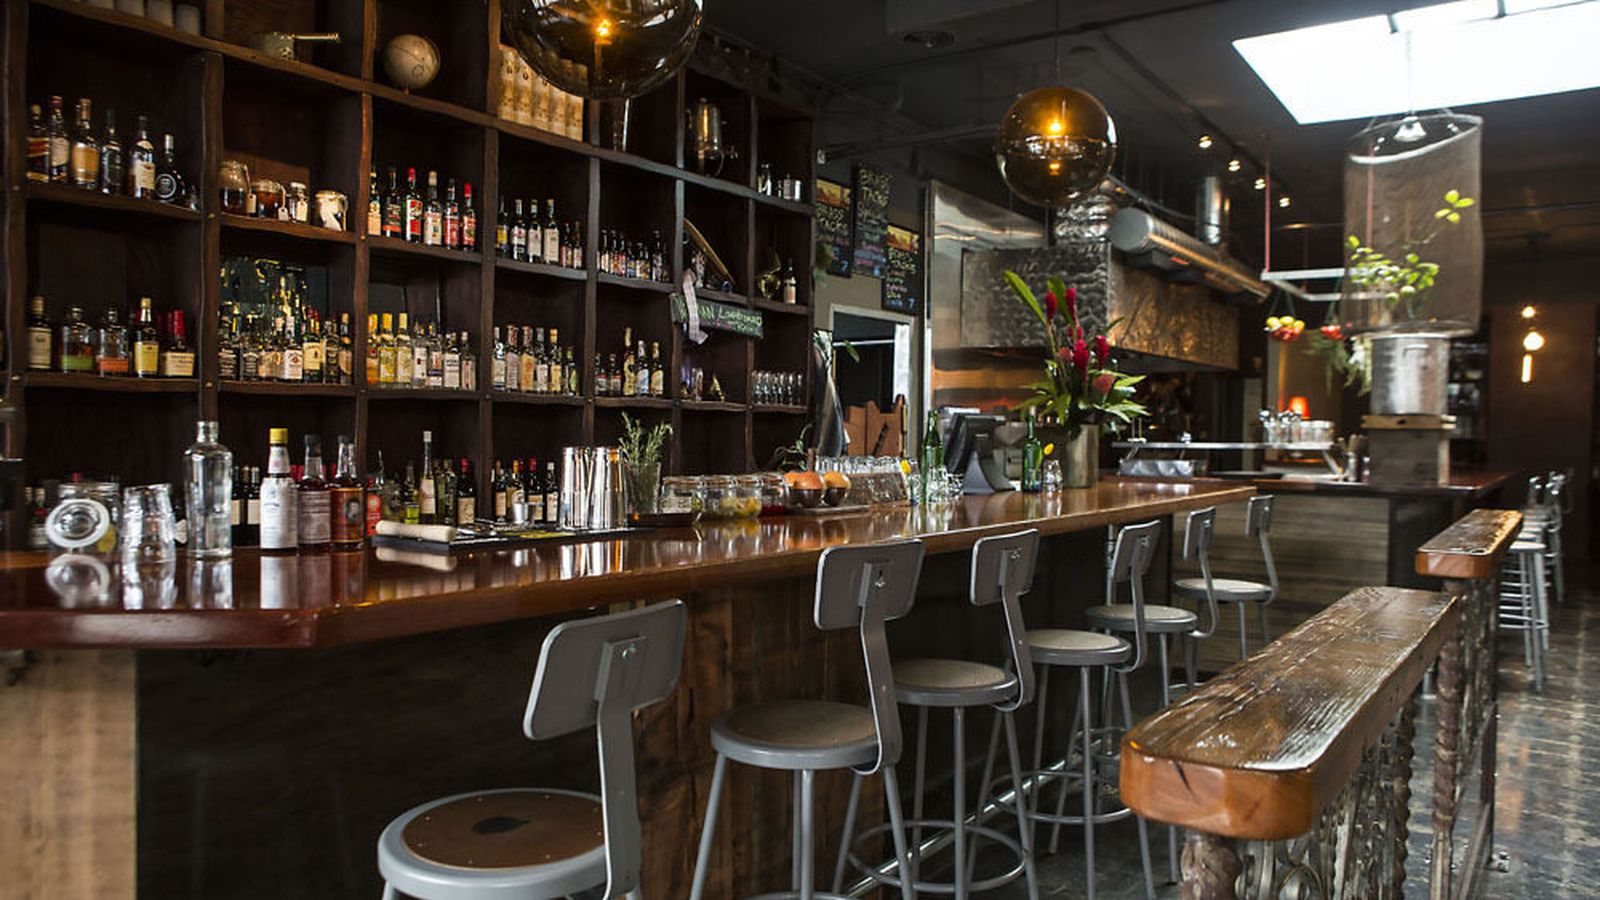 5 Things to Know About Brass Tacks in Georgetown  Eater